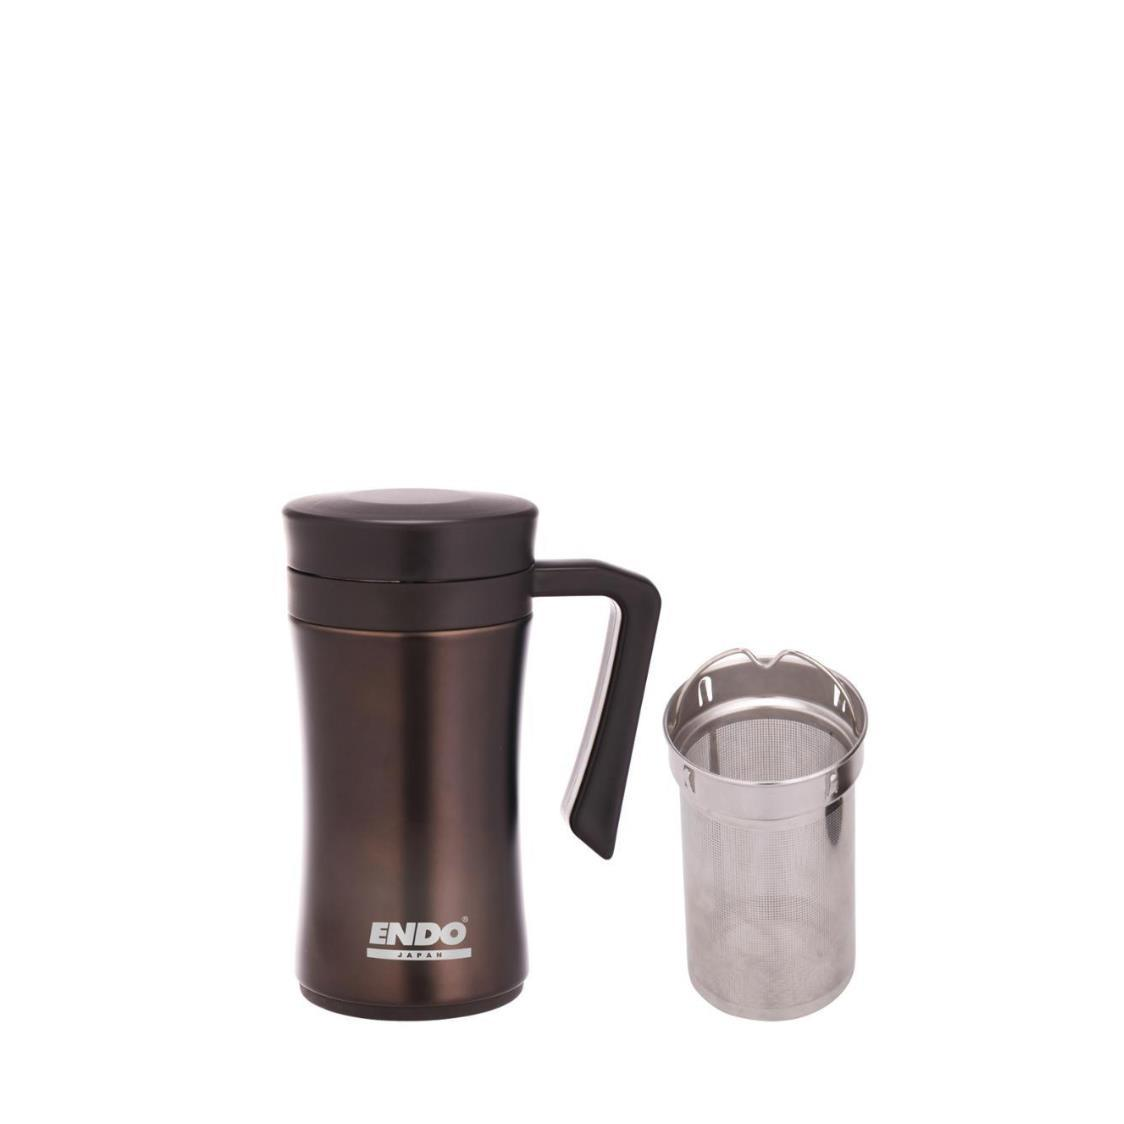 Endo 450ml Double Stainless Steel Desk Mug With Tea Strainer Urban Brown CX-3001